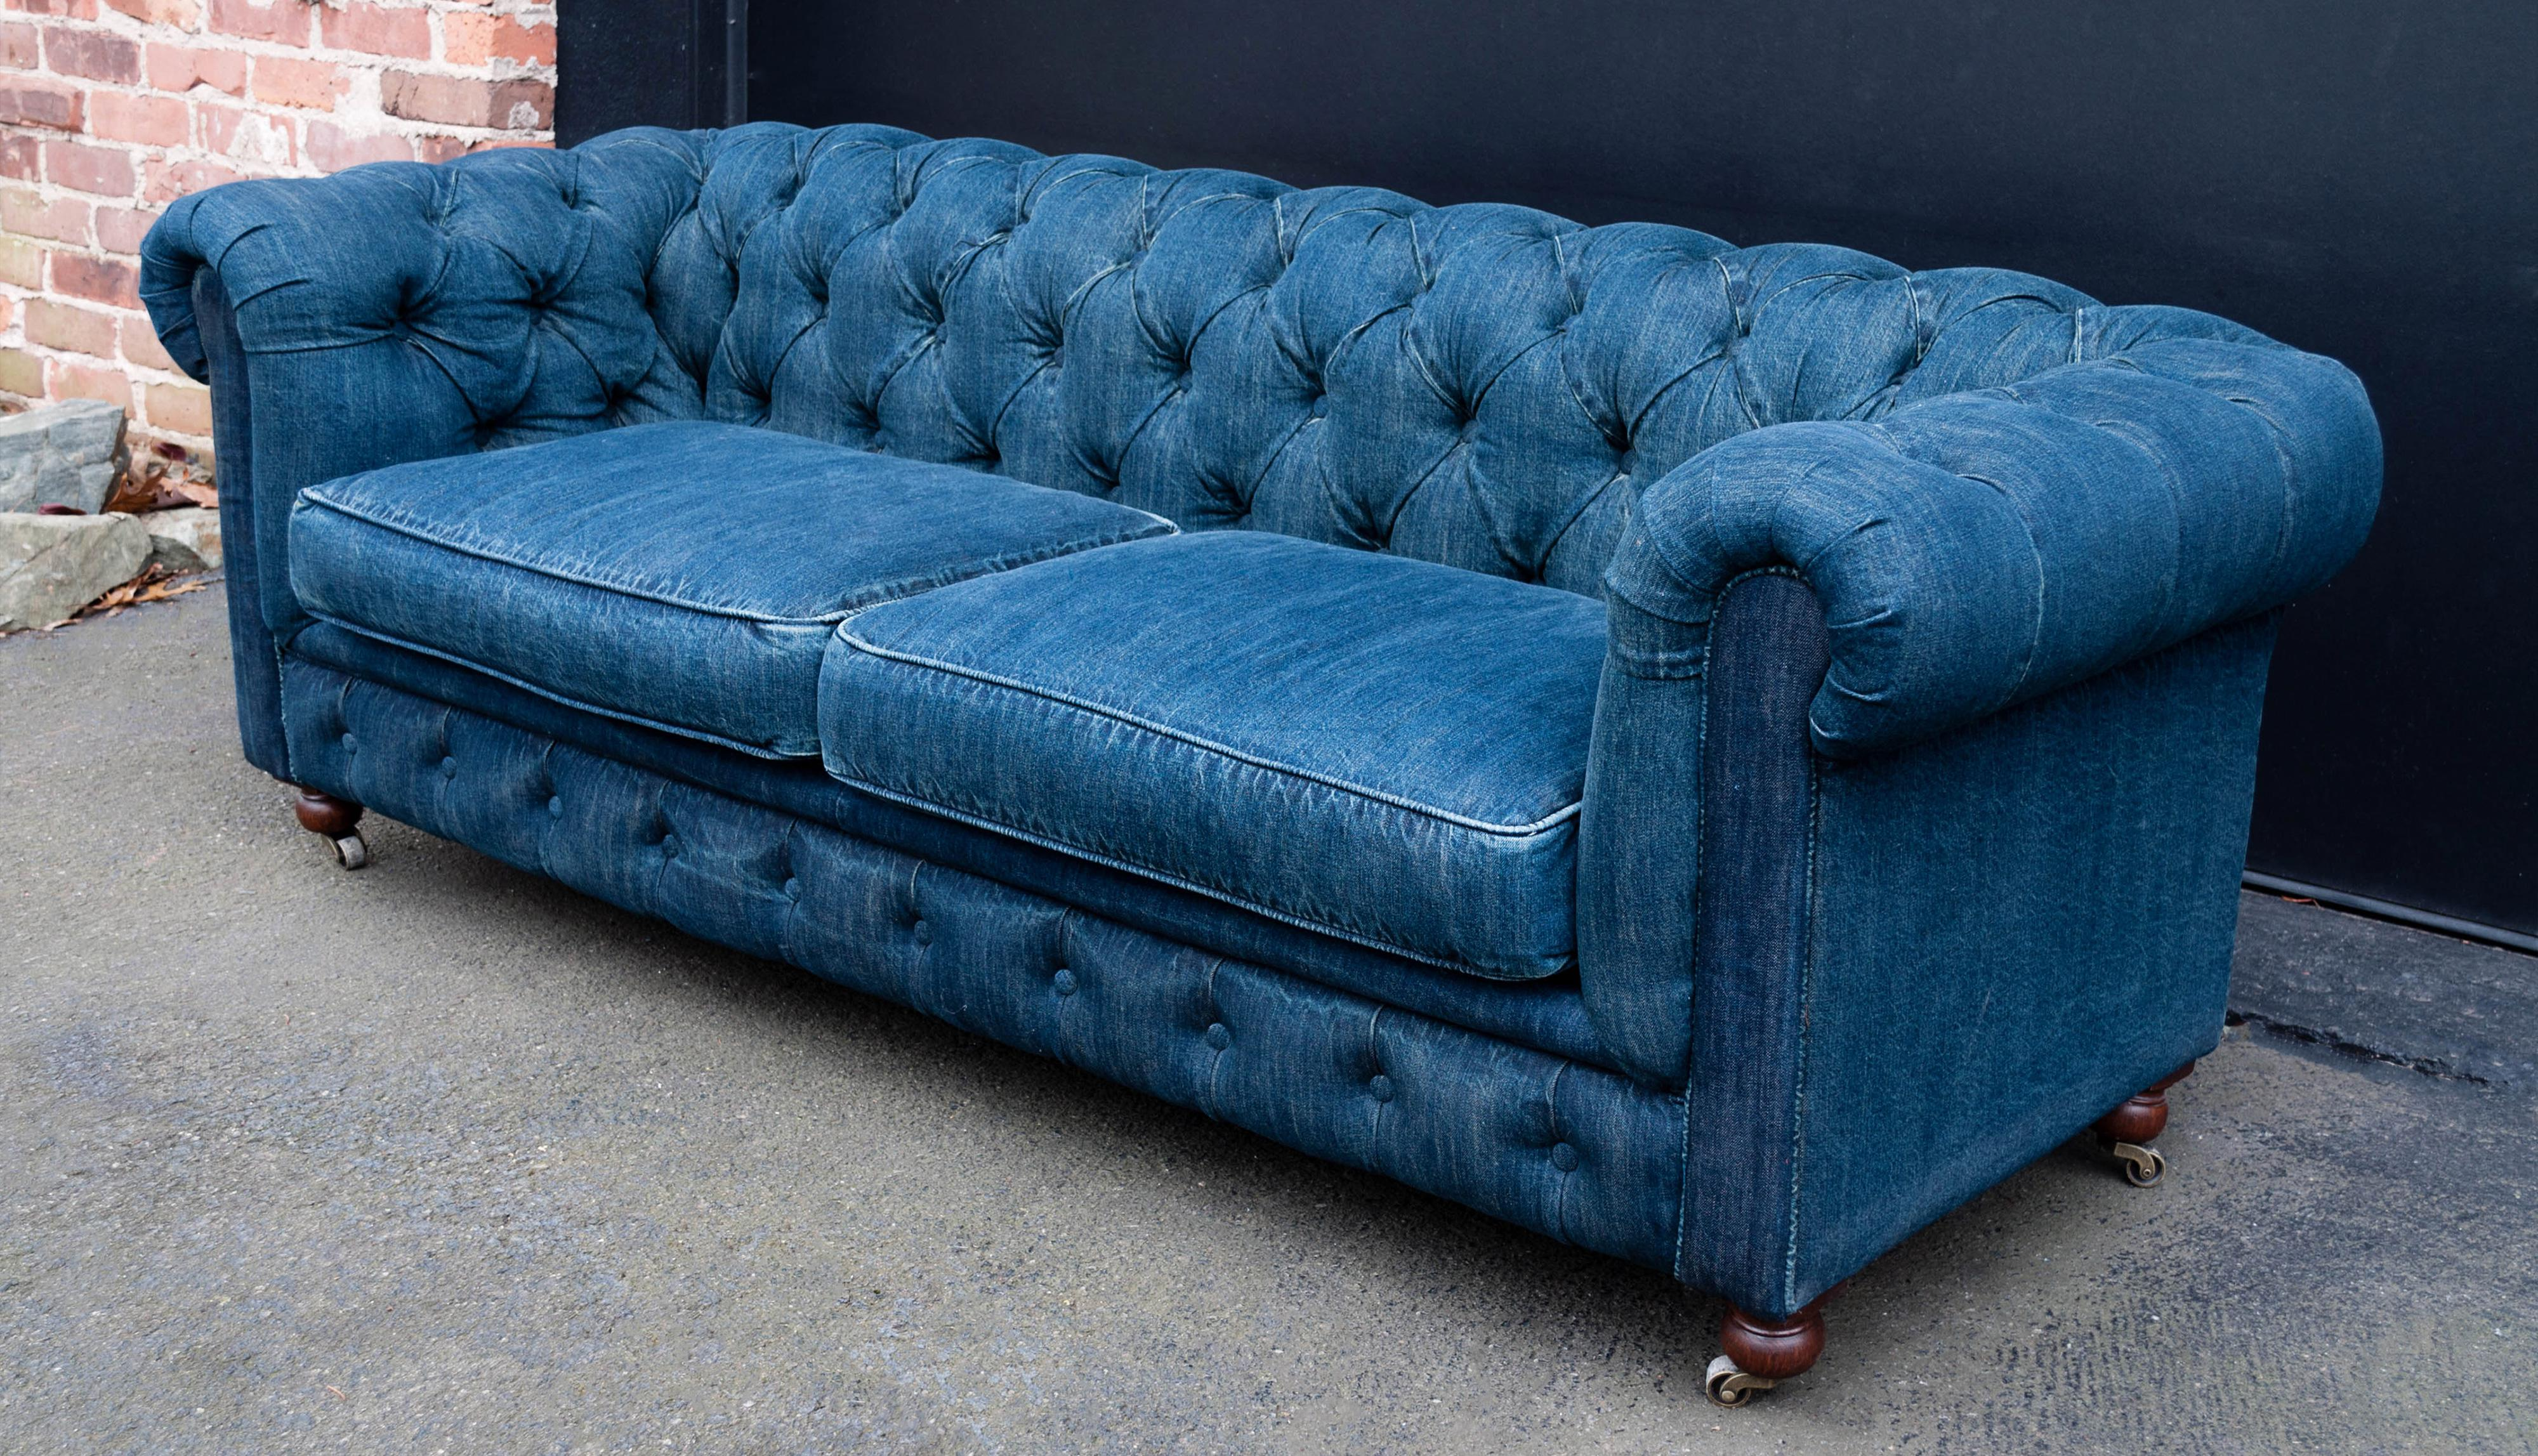 Traditional Mini Chesterfield Sofa By Restoration Hardware For Sale   Image  3 Of 11